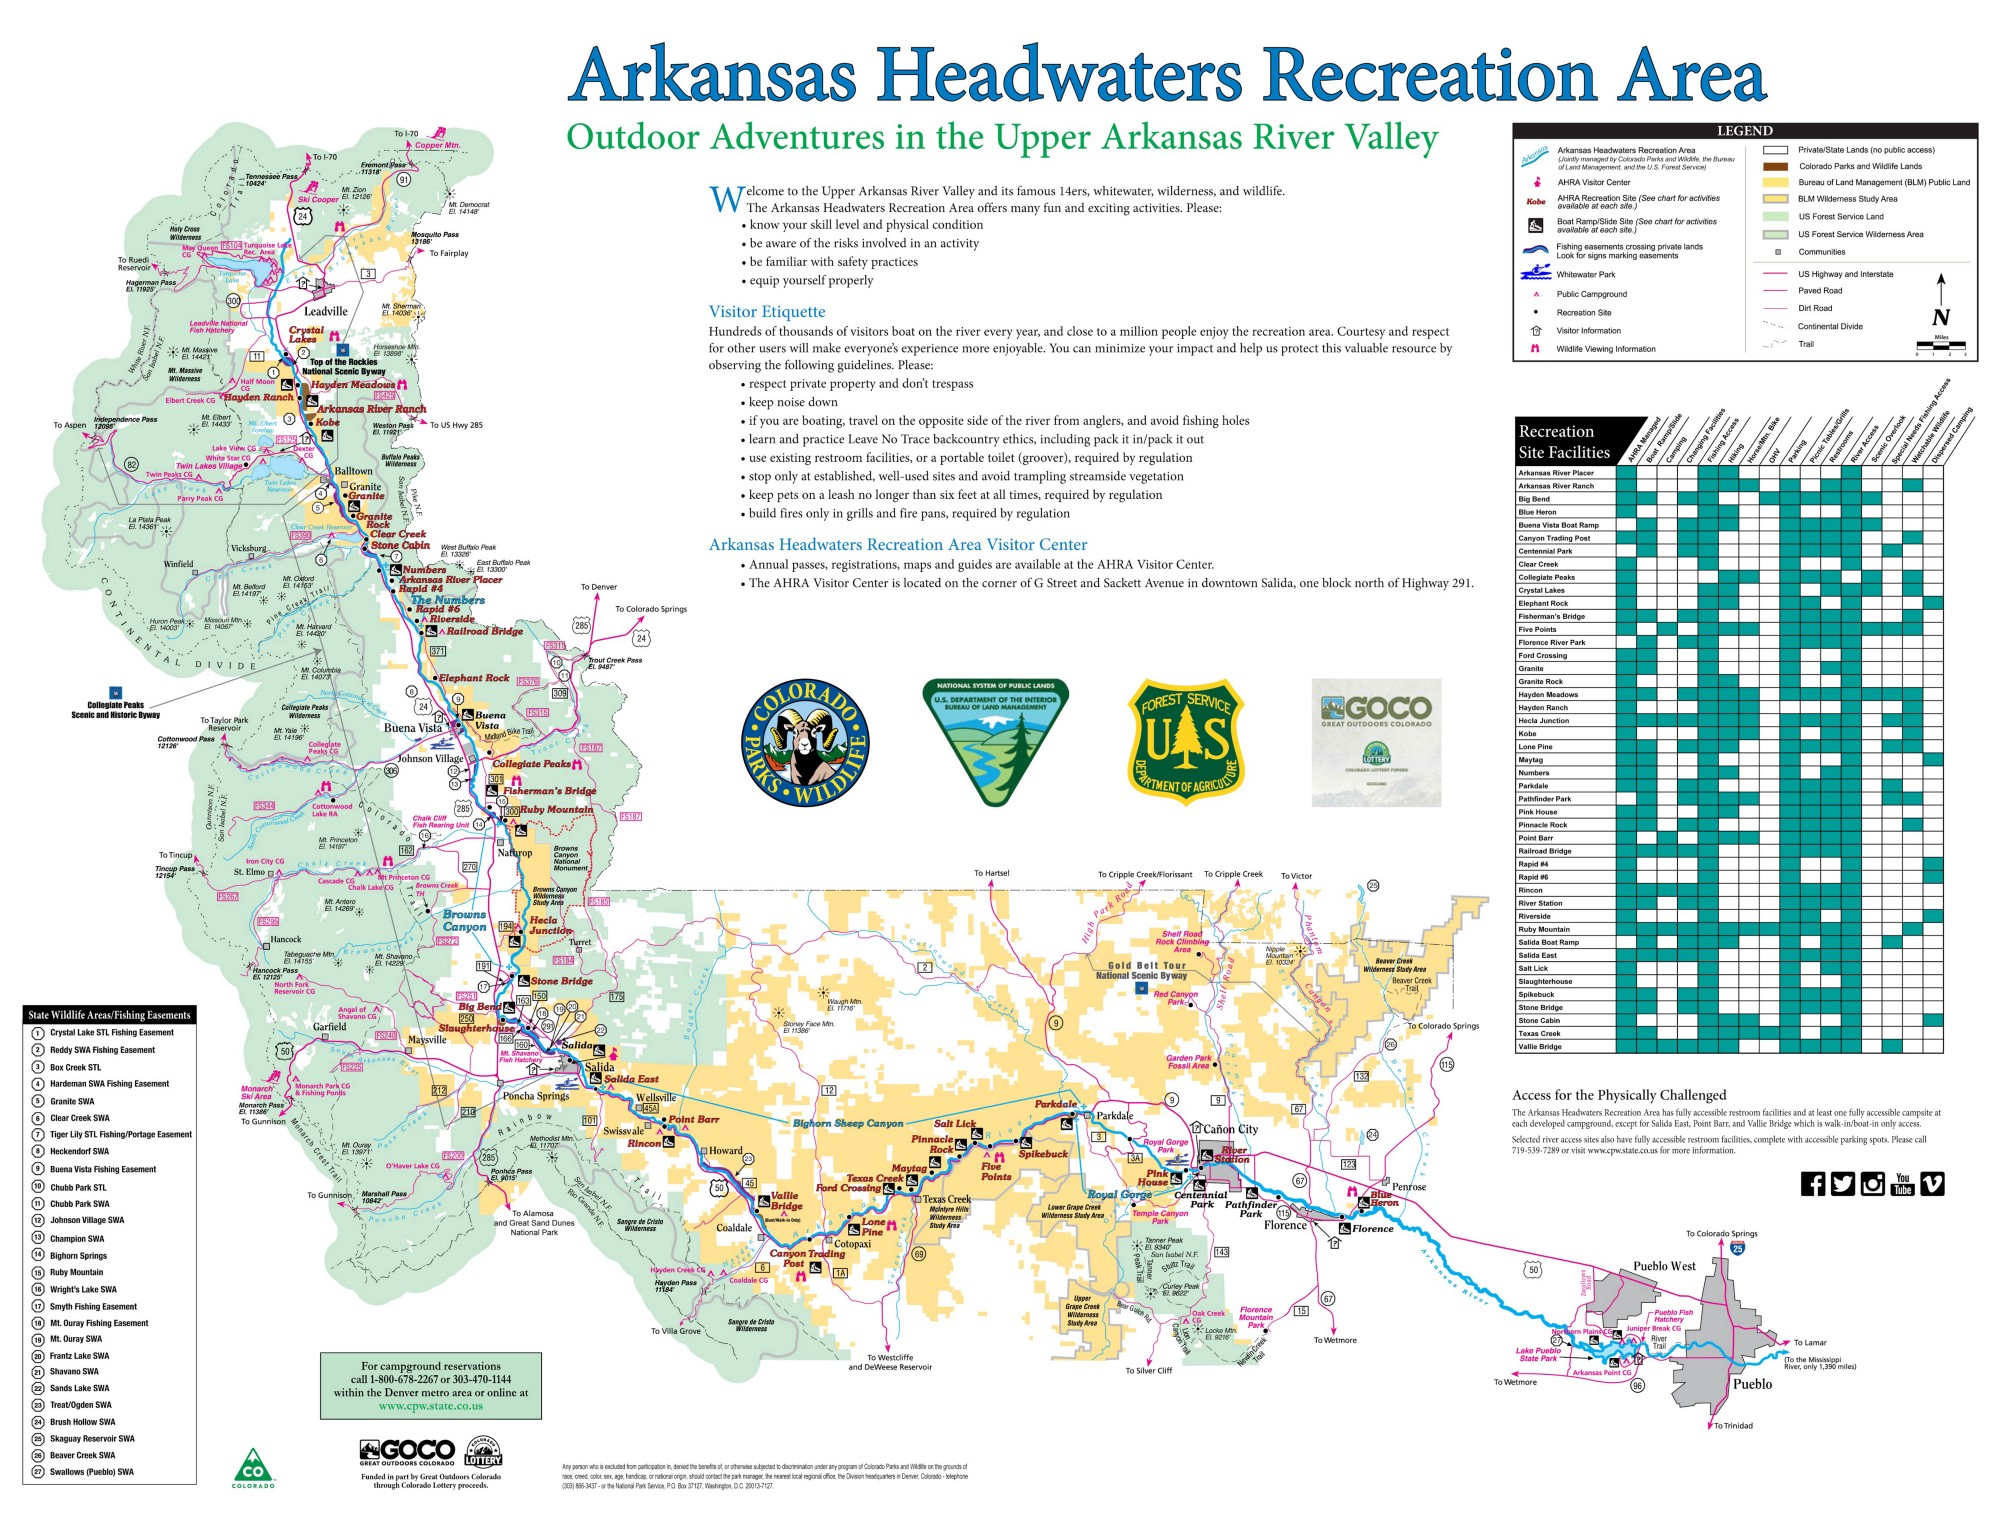 Arkansas Headwaters Recreation Area | BUREAU OF LAND MANAGEMENT